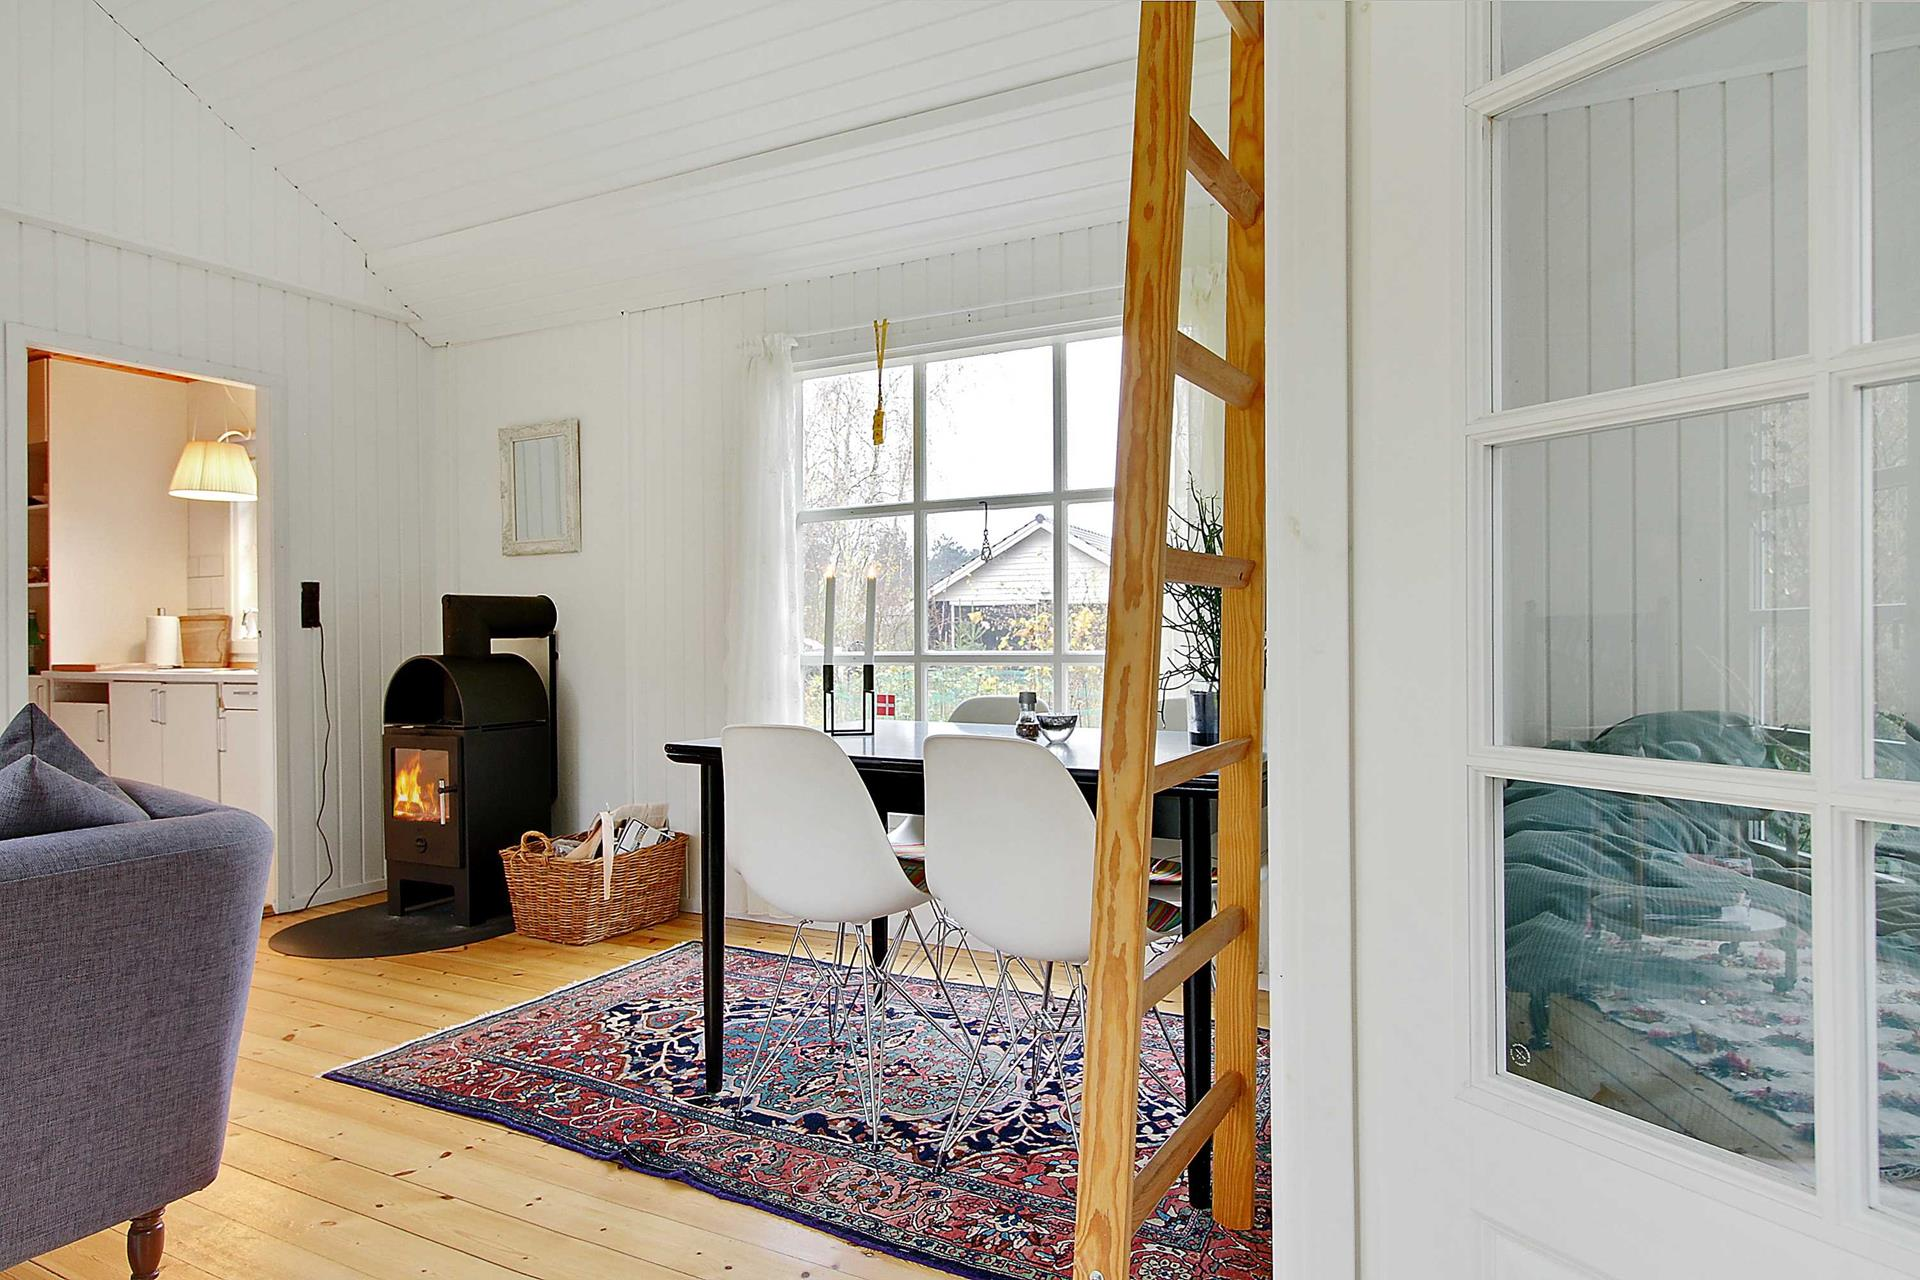 Gallery: Black and white Danish summerhouse   Small House Bliss